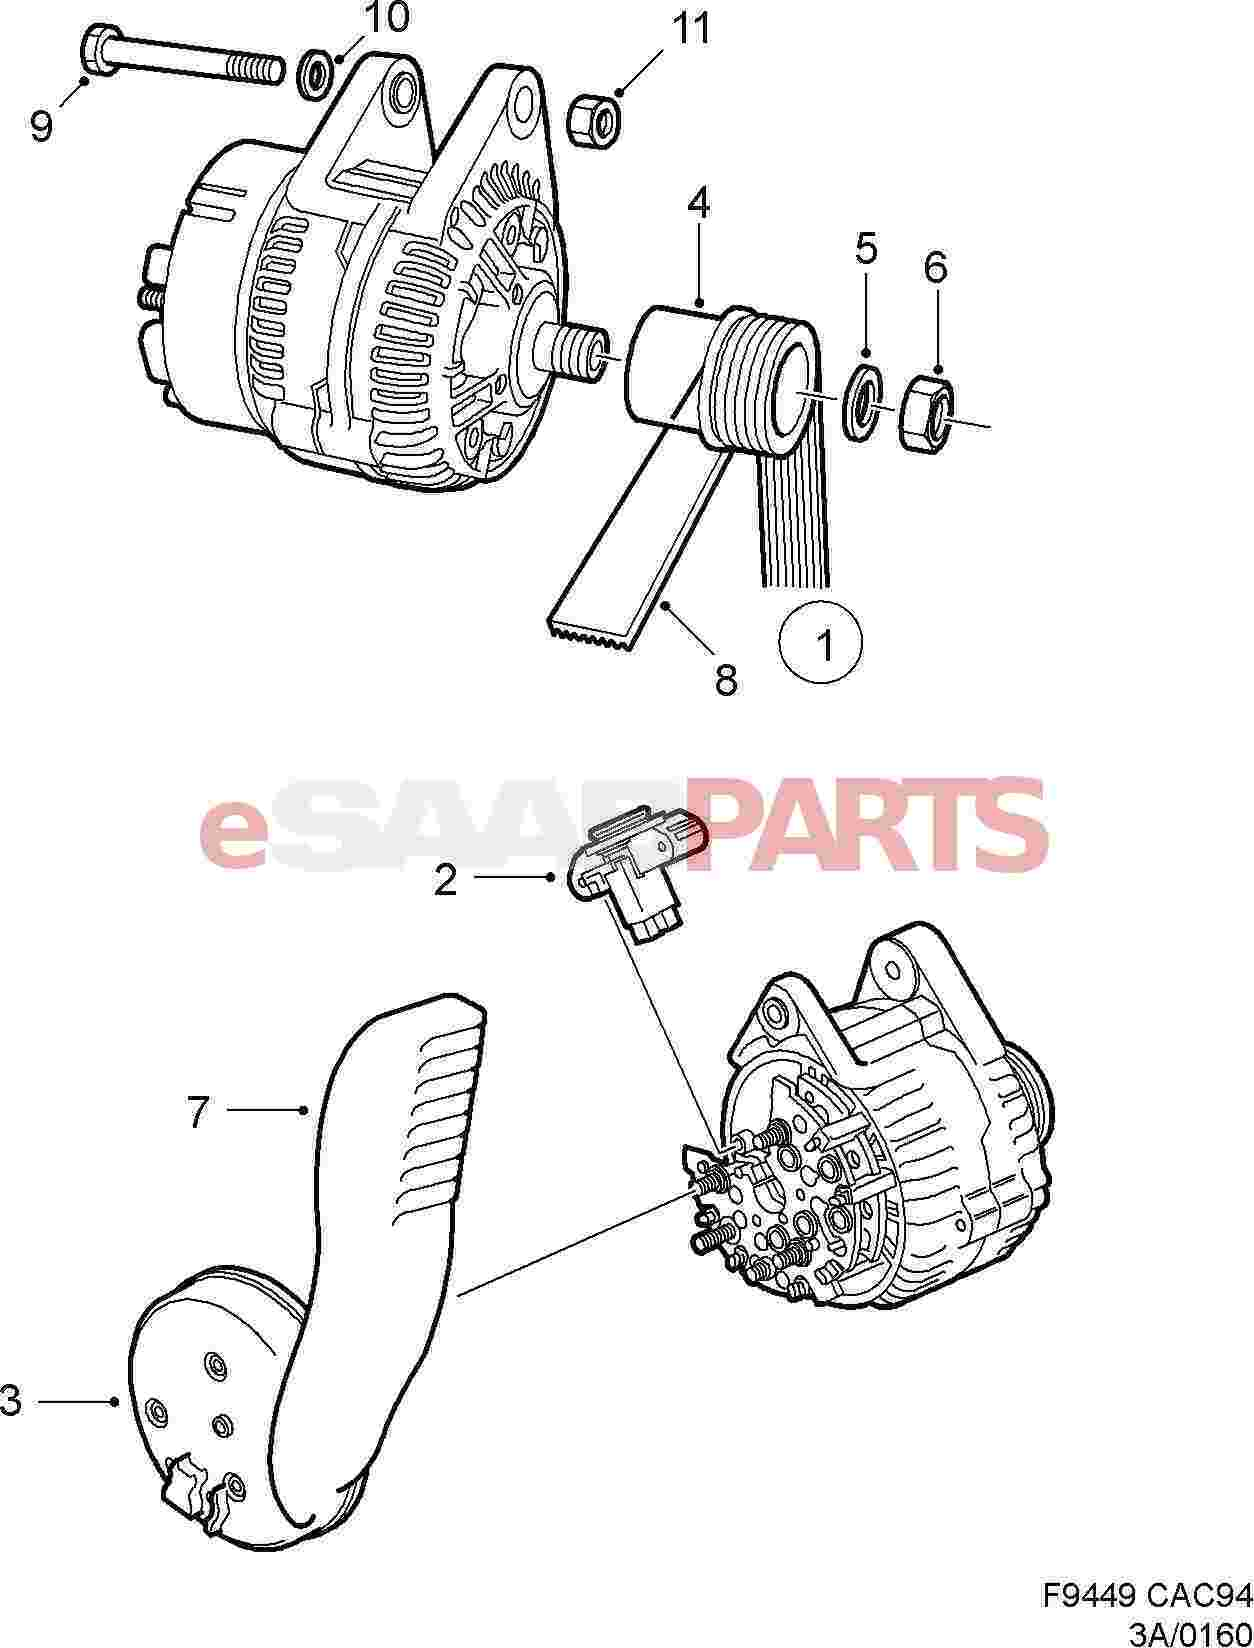 Lng EN srub 161 iprod 2468 pageid 40 Lower Radiator Hose For Saab 900 Ng furthermore Right Rear Fender Molding Saab 9 5 98 together with Subaru Engine Scheme moreover Brake Hose Rear Axle Saab 9 5 as well Hydraulic Hose Conv Top 4. on saab 900 turbo exhaust